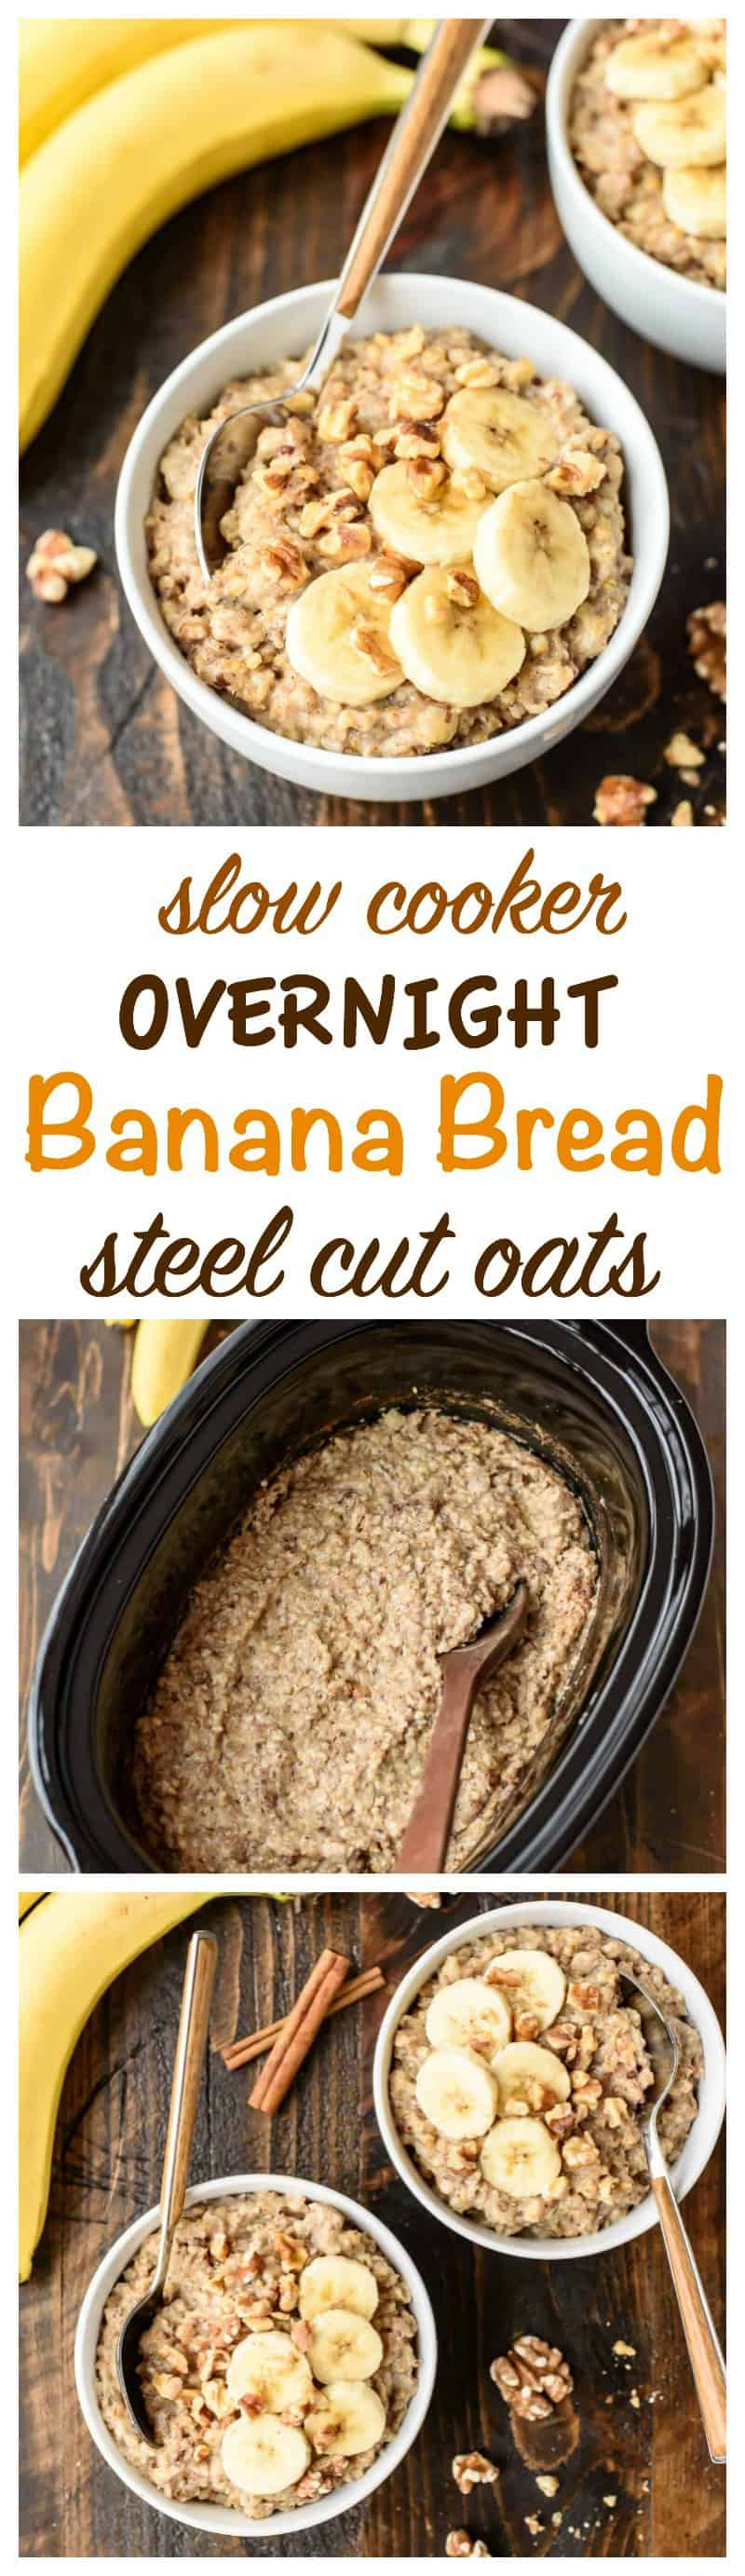 Banana Bread Overnight Slow Cooker Steel Cut Oats is the best breakfast recipe that you don't have to wait for! This easy oatmeal cooks overnight in a crock pot! #crockpot #breakfast #oatmeal #recipe